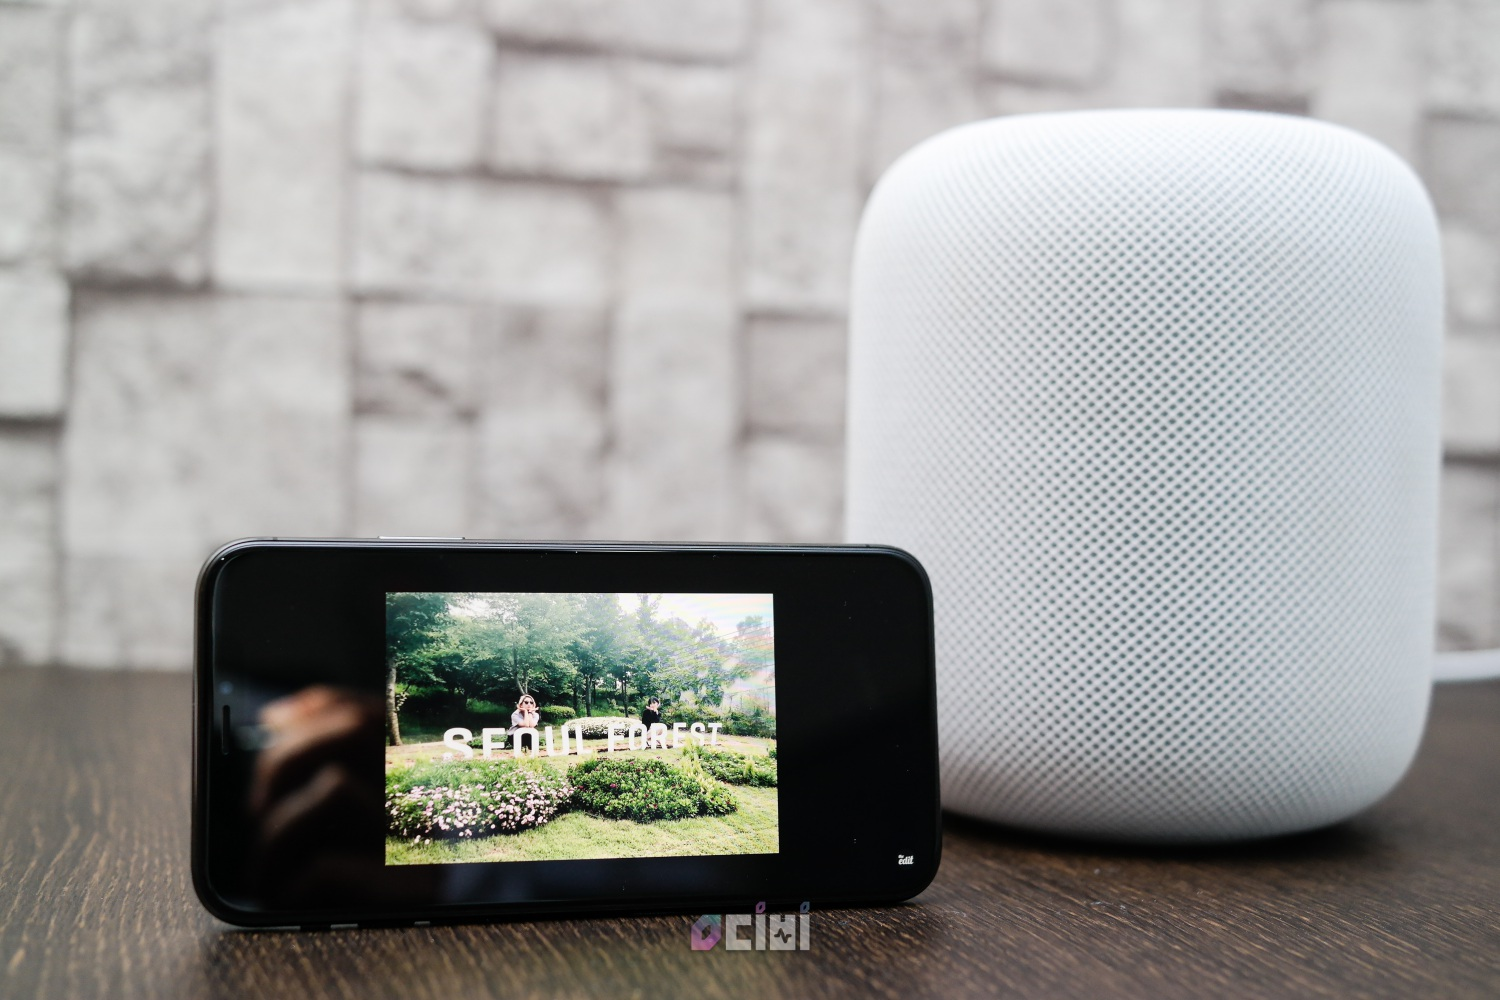 apple_homepod_0db_0041.jpg